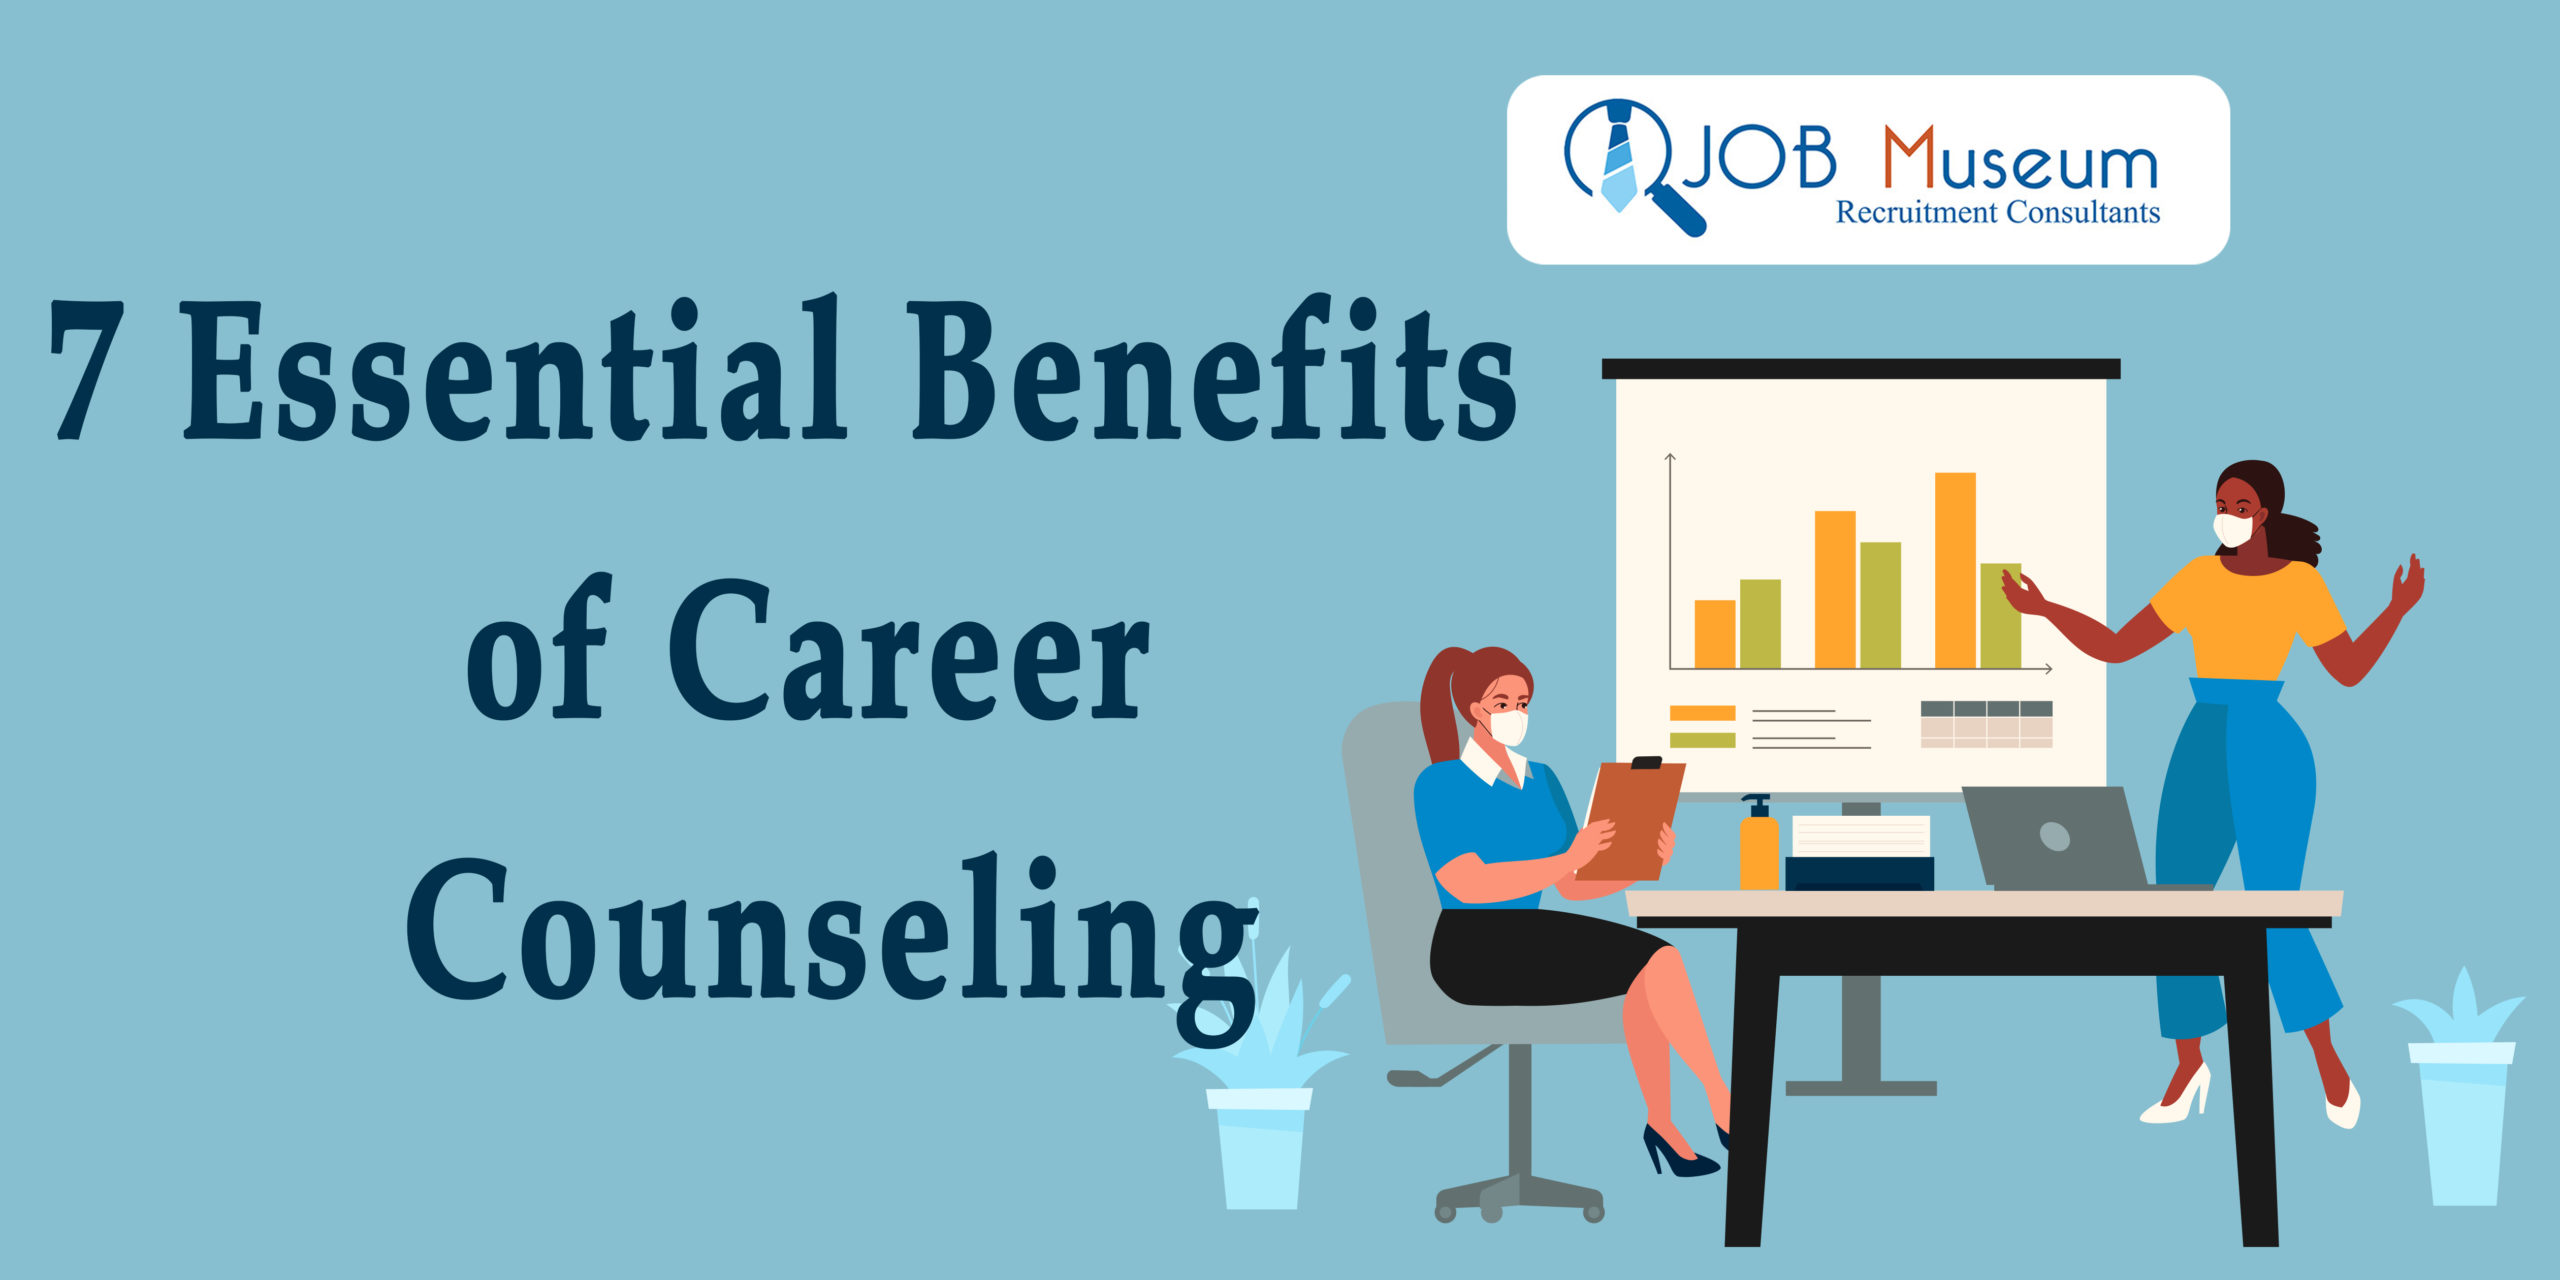 7 Essential Benefits of Career Counseling